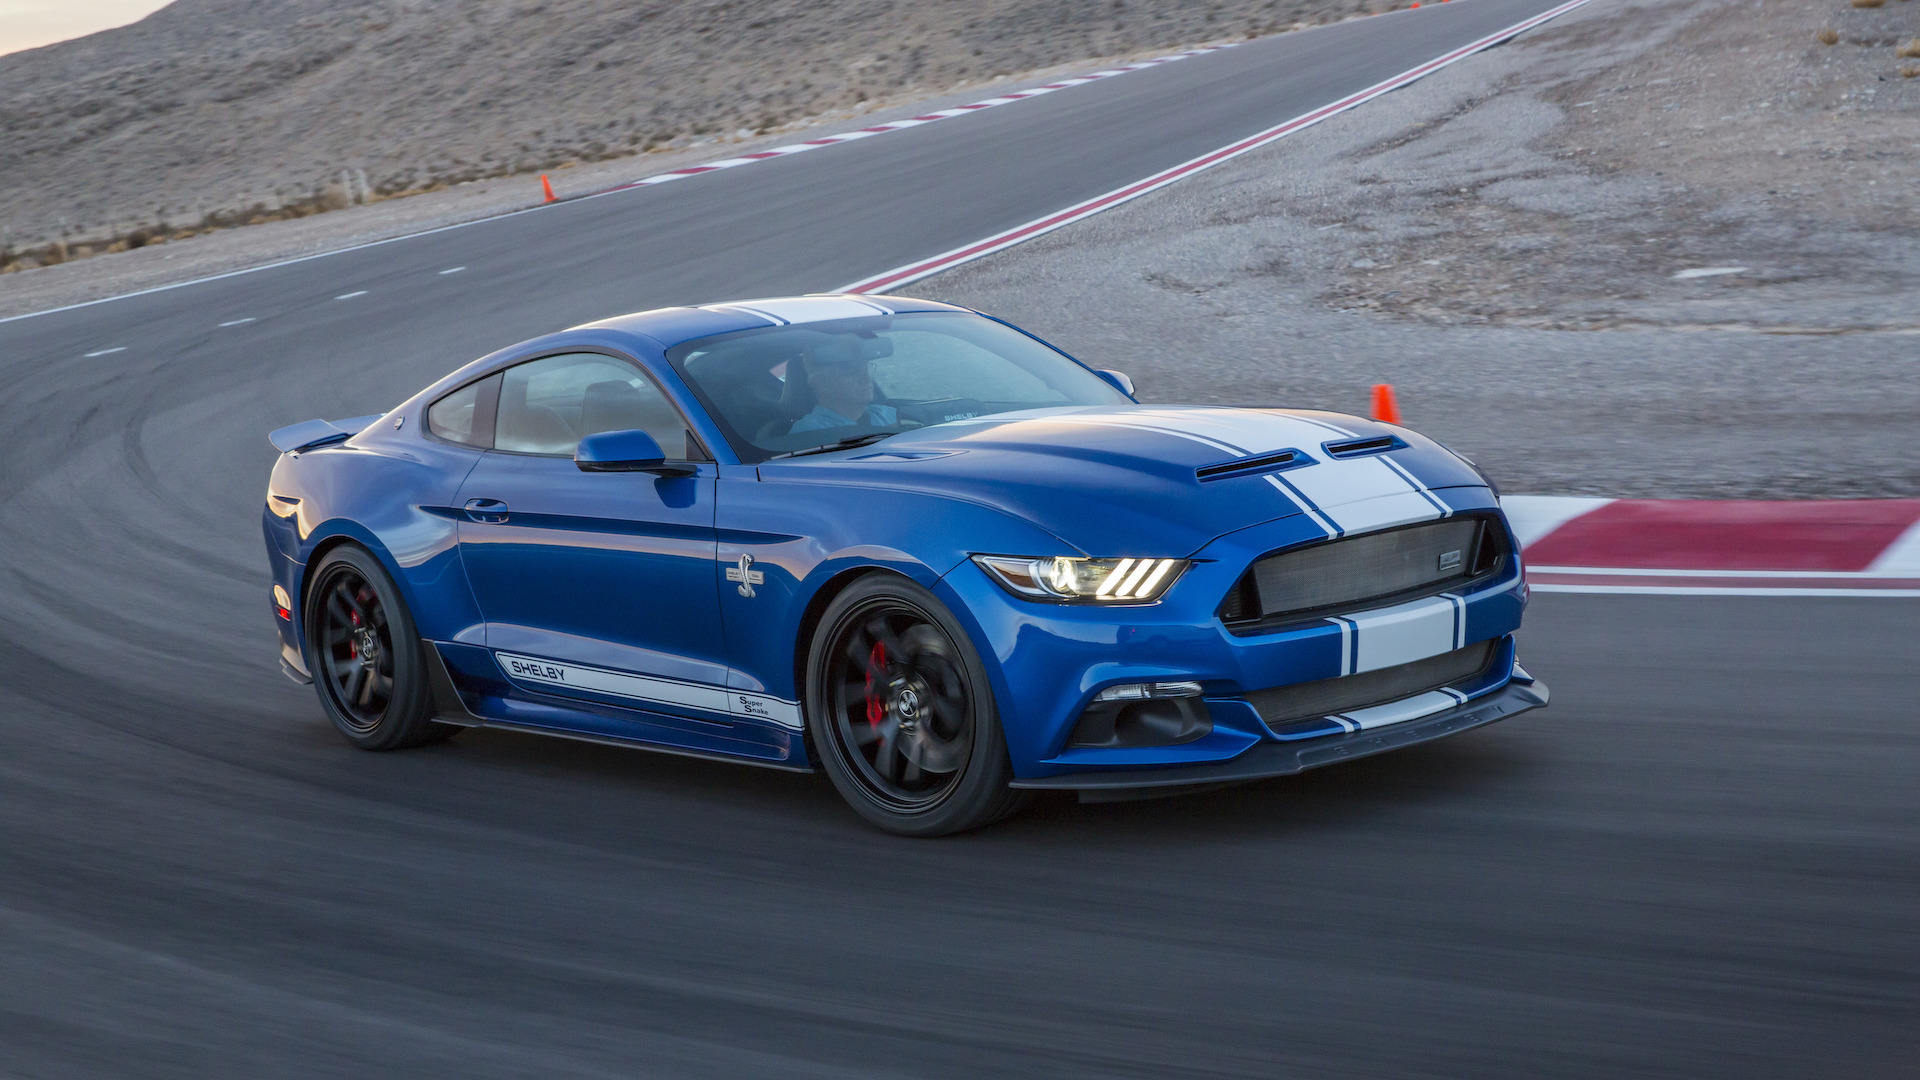 2017 Shelby Gt500 >> Shelby Is Celebrating 50 Years With A New 750 Hp Super Snake